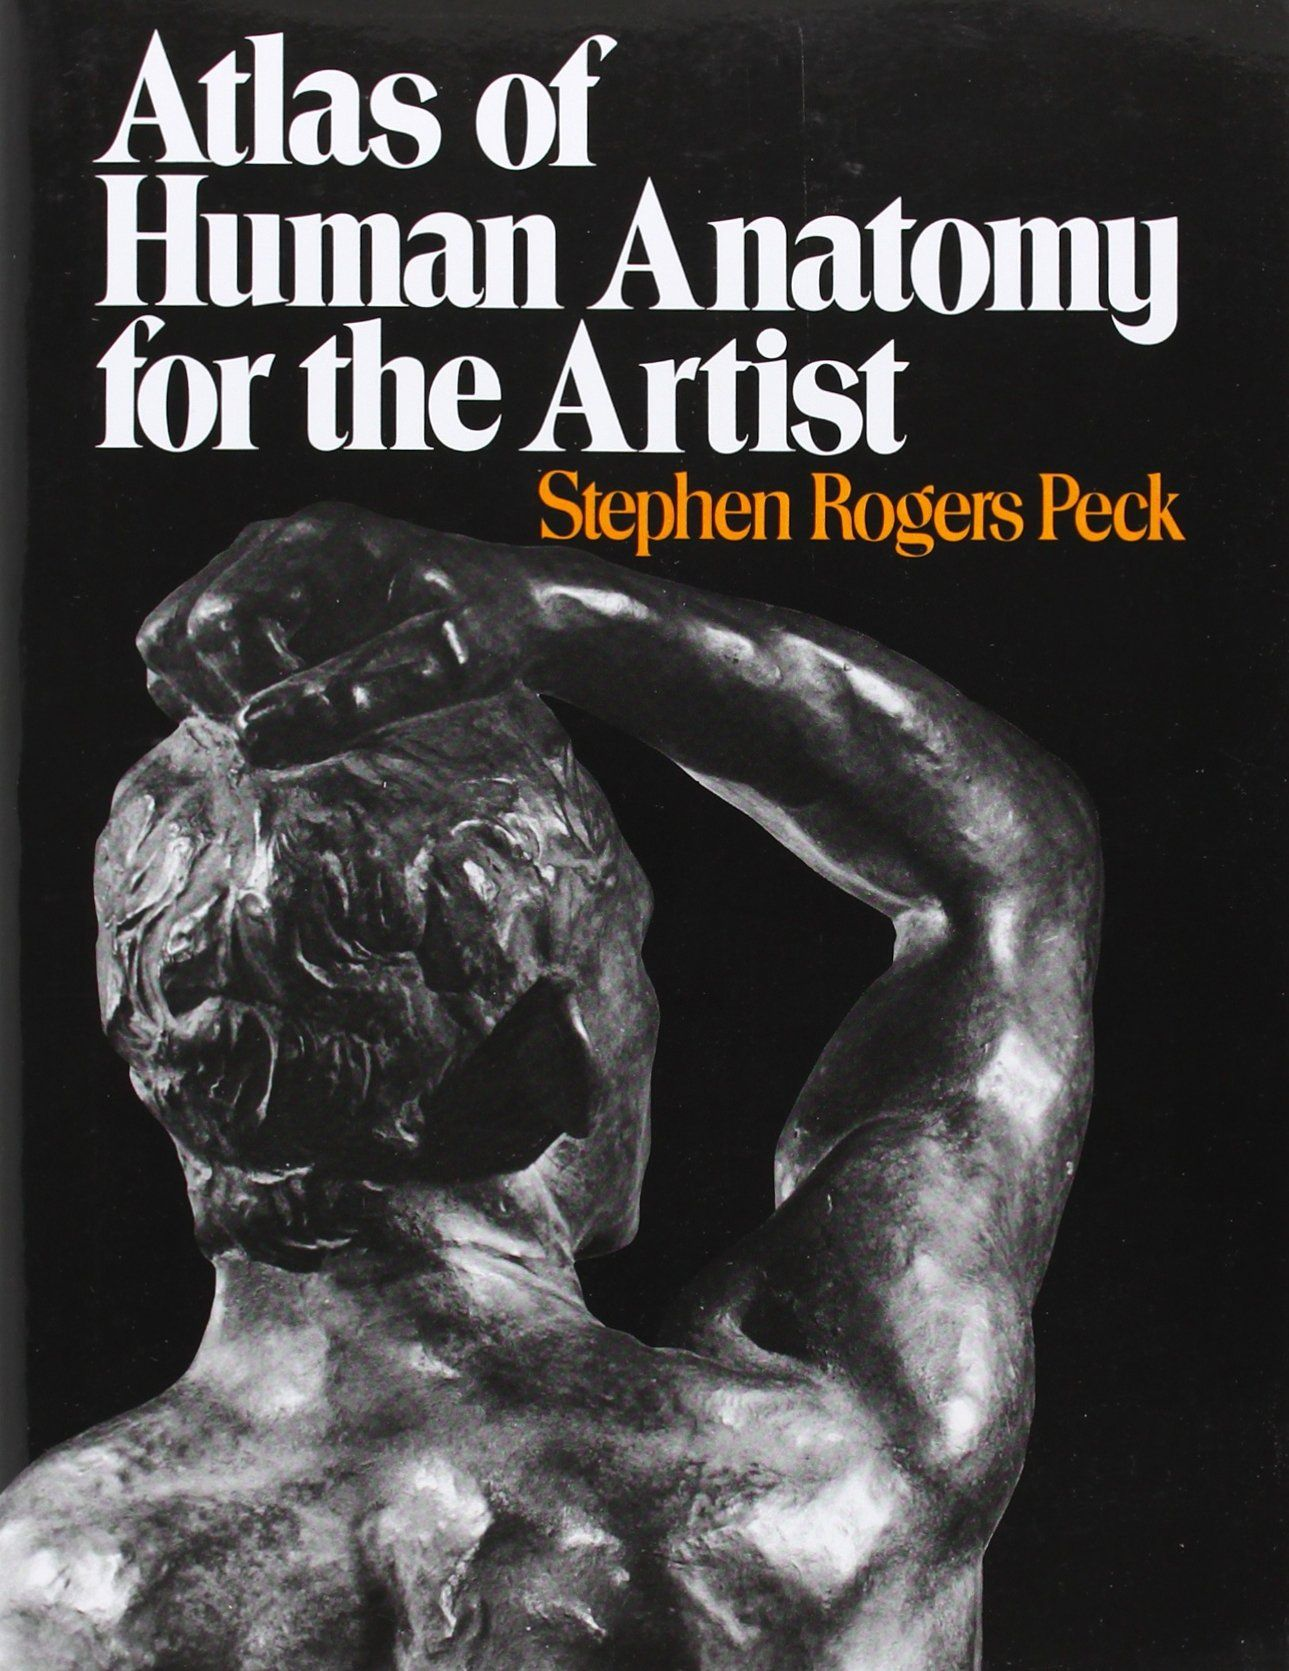 Pin By Argent Arts On Essential Art Books Pinterest Human